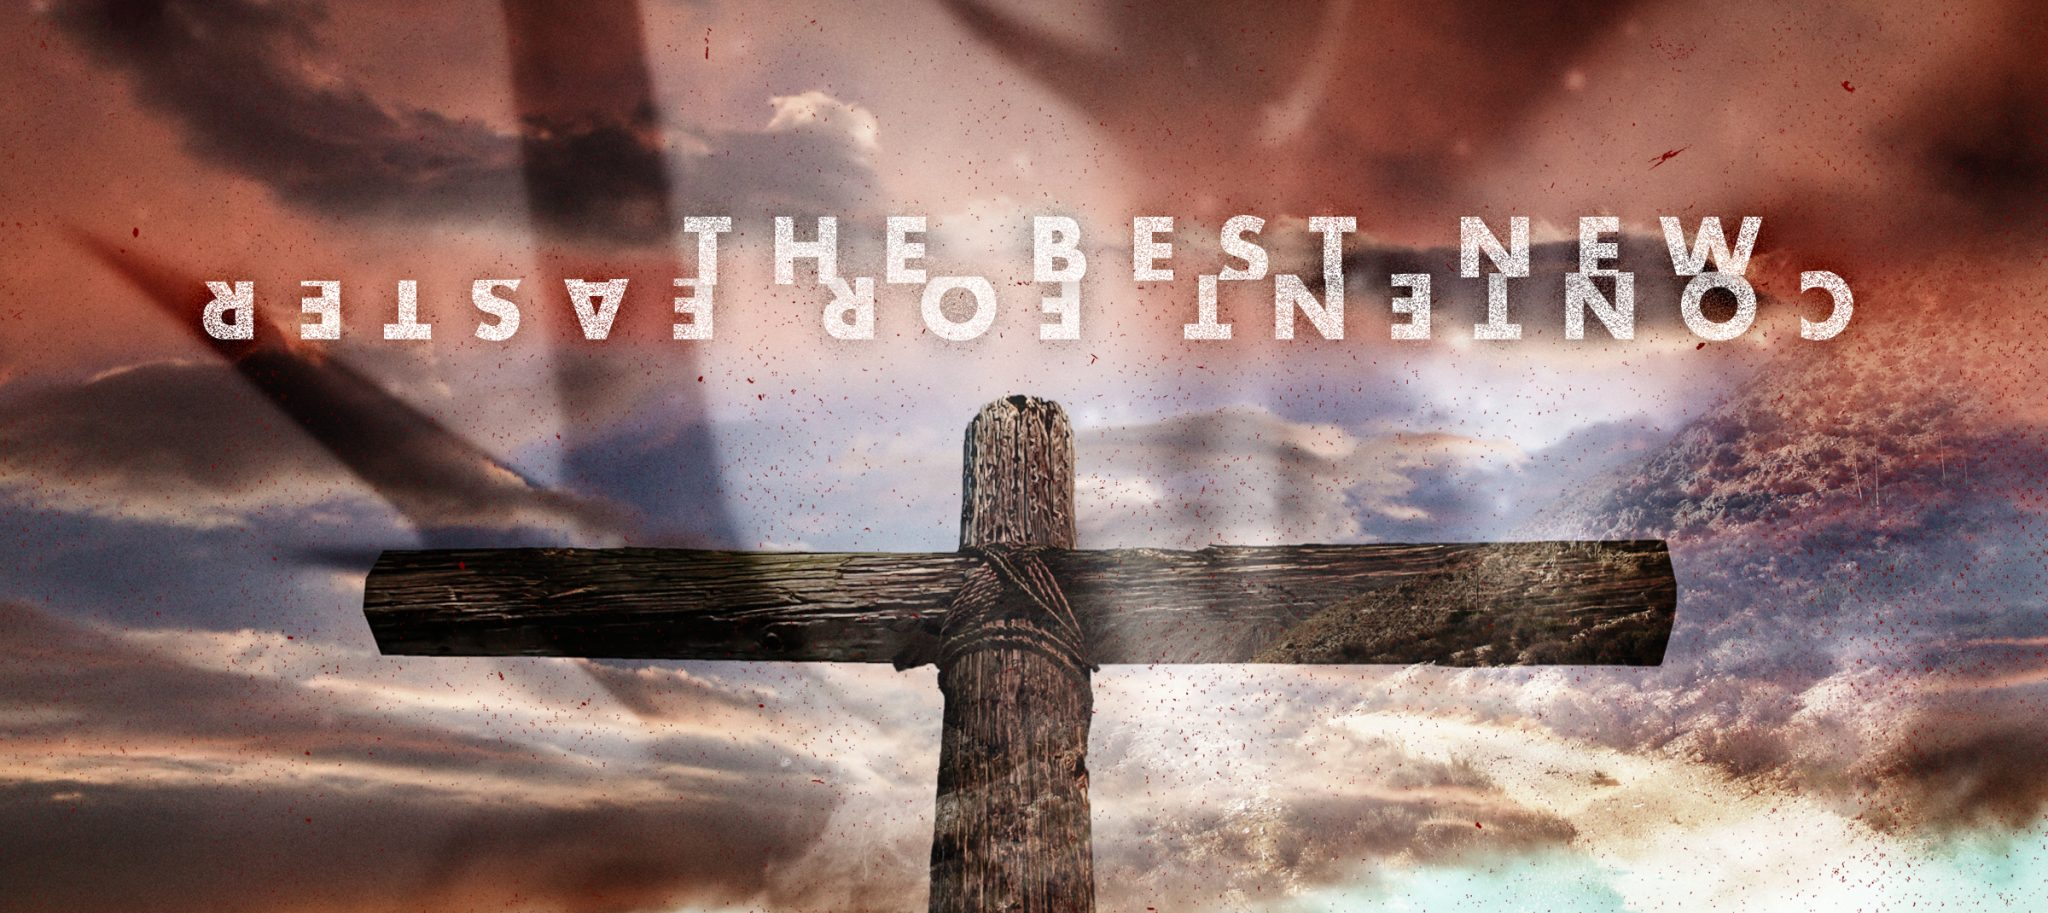 Best New Content for Easter | TripleWide Media